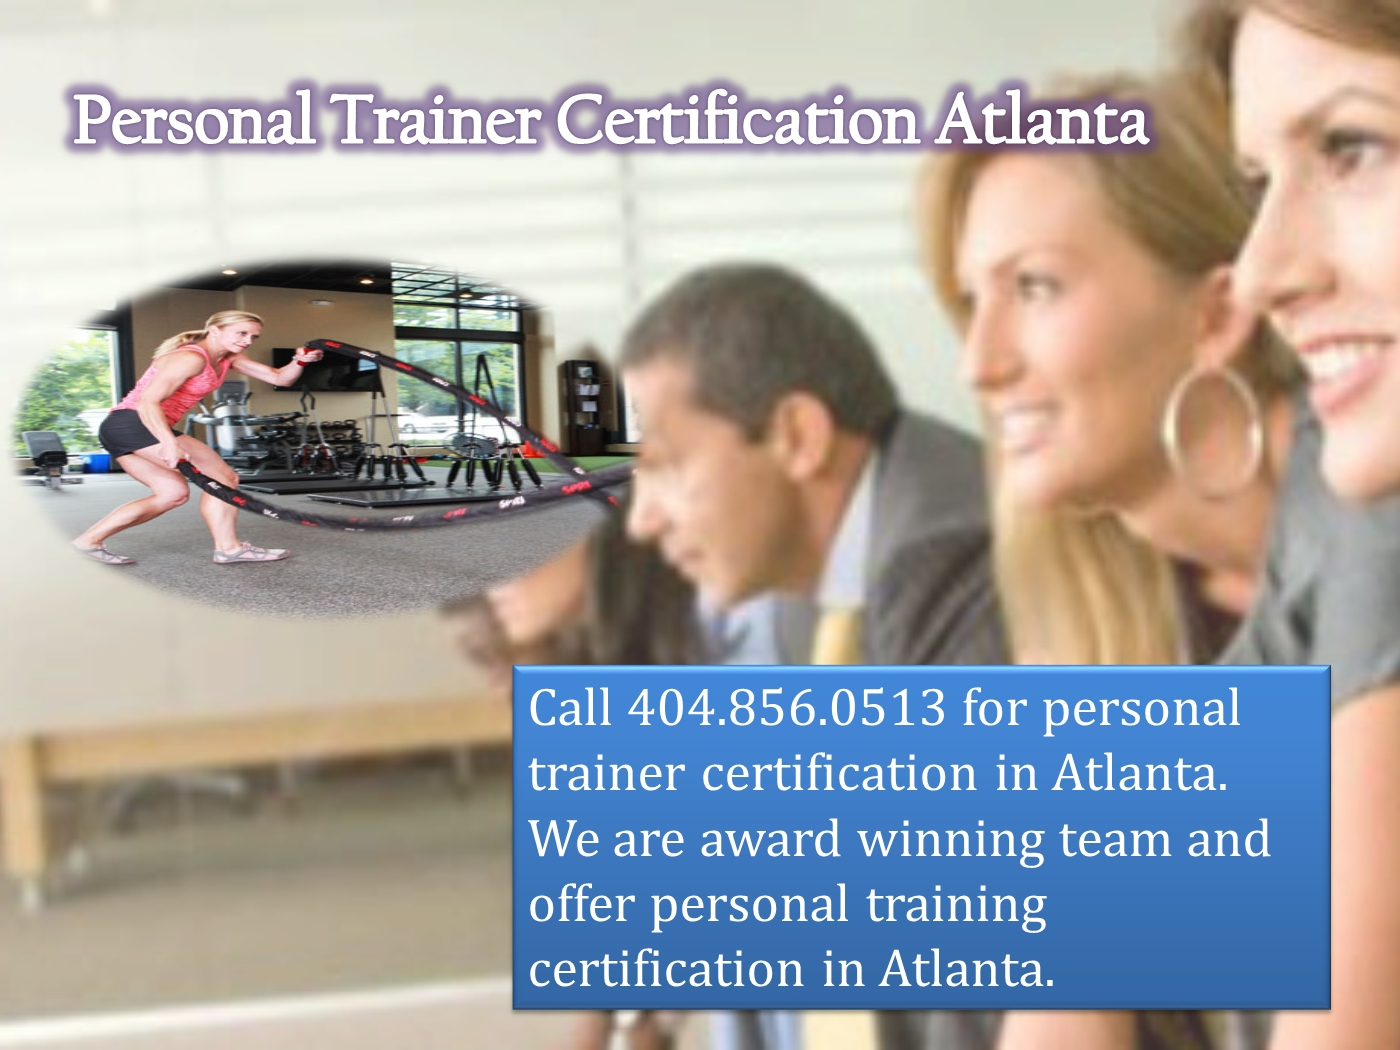 Personal trainer certification atlanta powerpoint presentation ppt embed xflitez Images